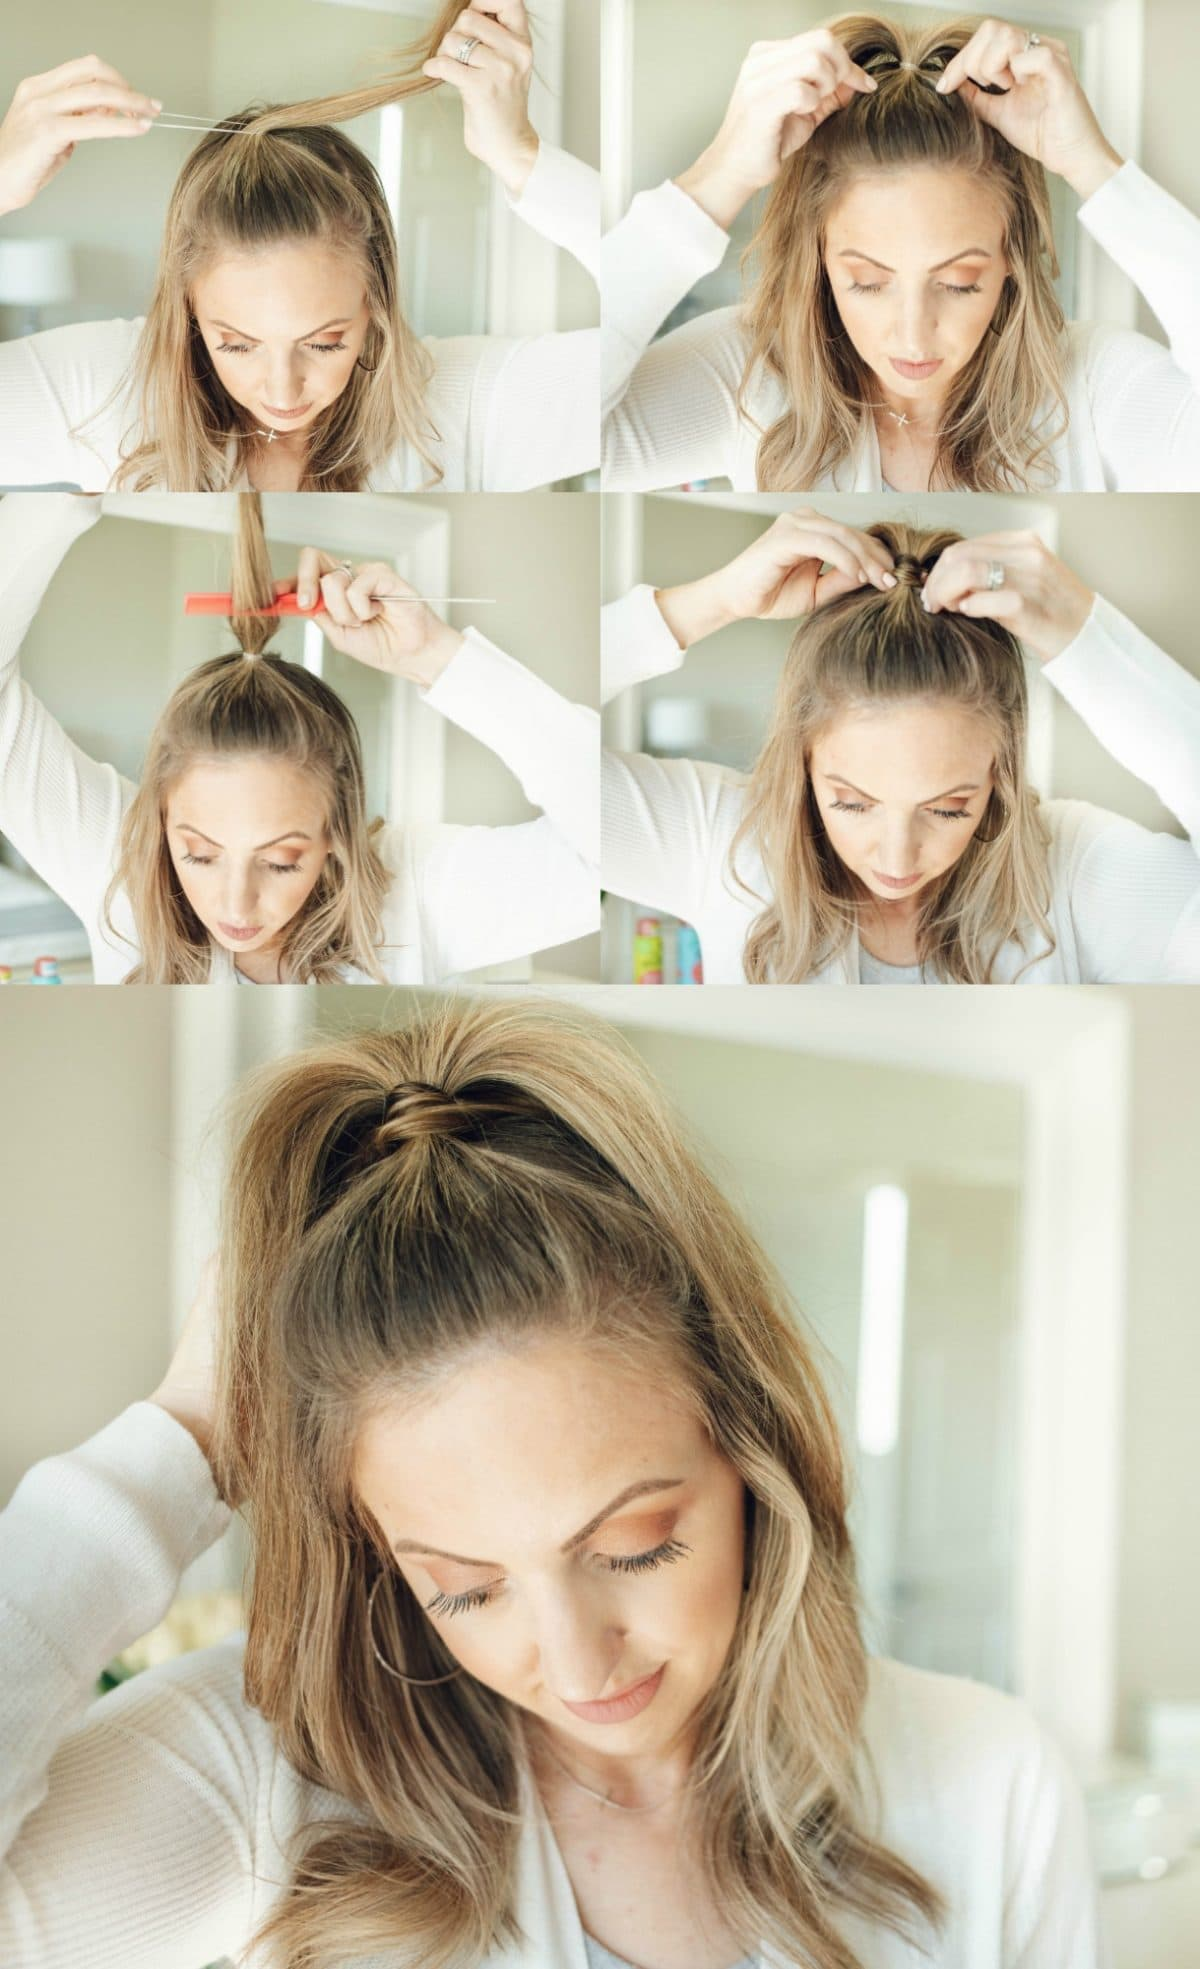 Houston beauty blogger Meg O. on the Go shares 3 hairstyles for second day hair and beyond. These are all fine hair approved! This half up pony is cute and easy